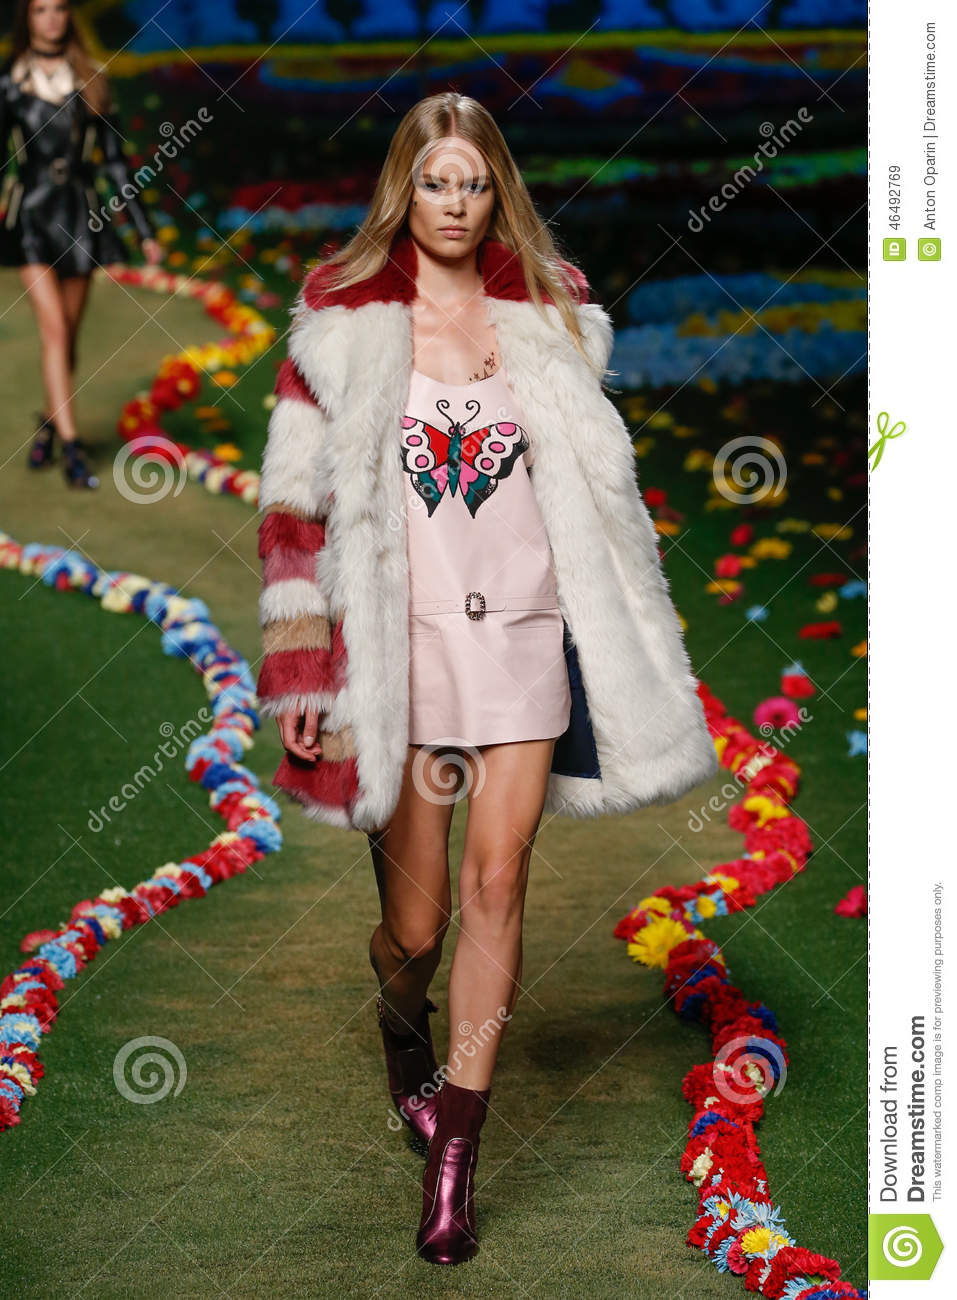 5592ecfc61fb NEW YORK, NY - SEPTEMBER 08: A model walks the runway at Tommy Hilfiger  Women's fashion show during Mercedes-Benz Fashion Week Spring 2015 at Park  Avenue ...